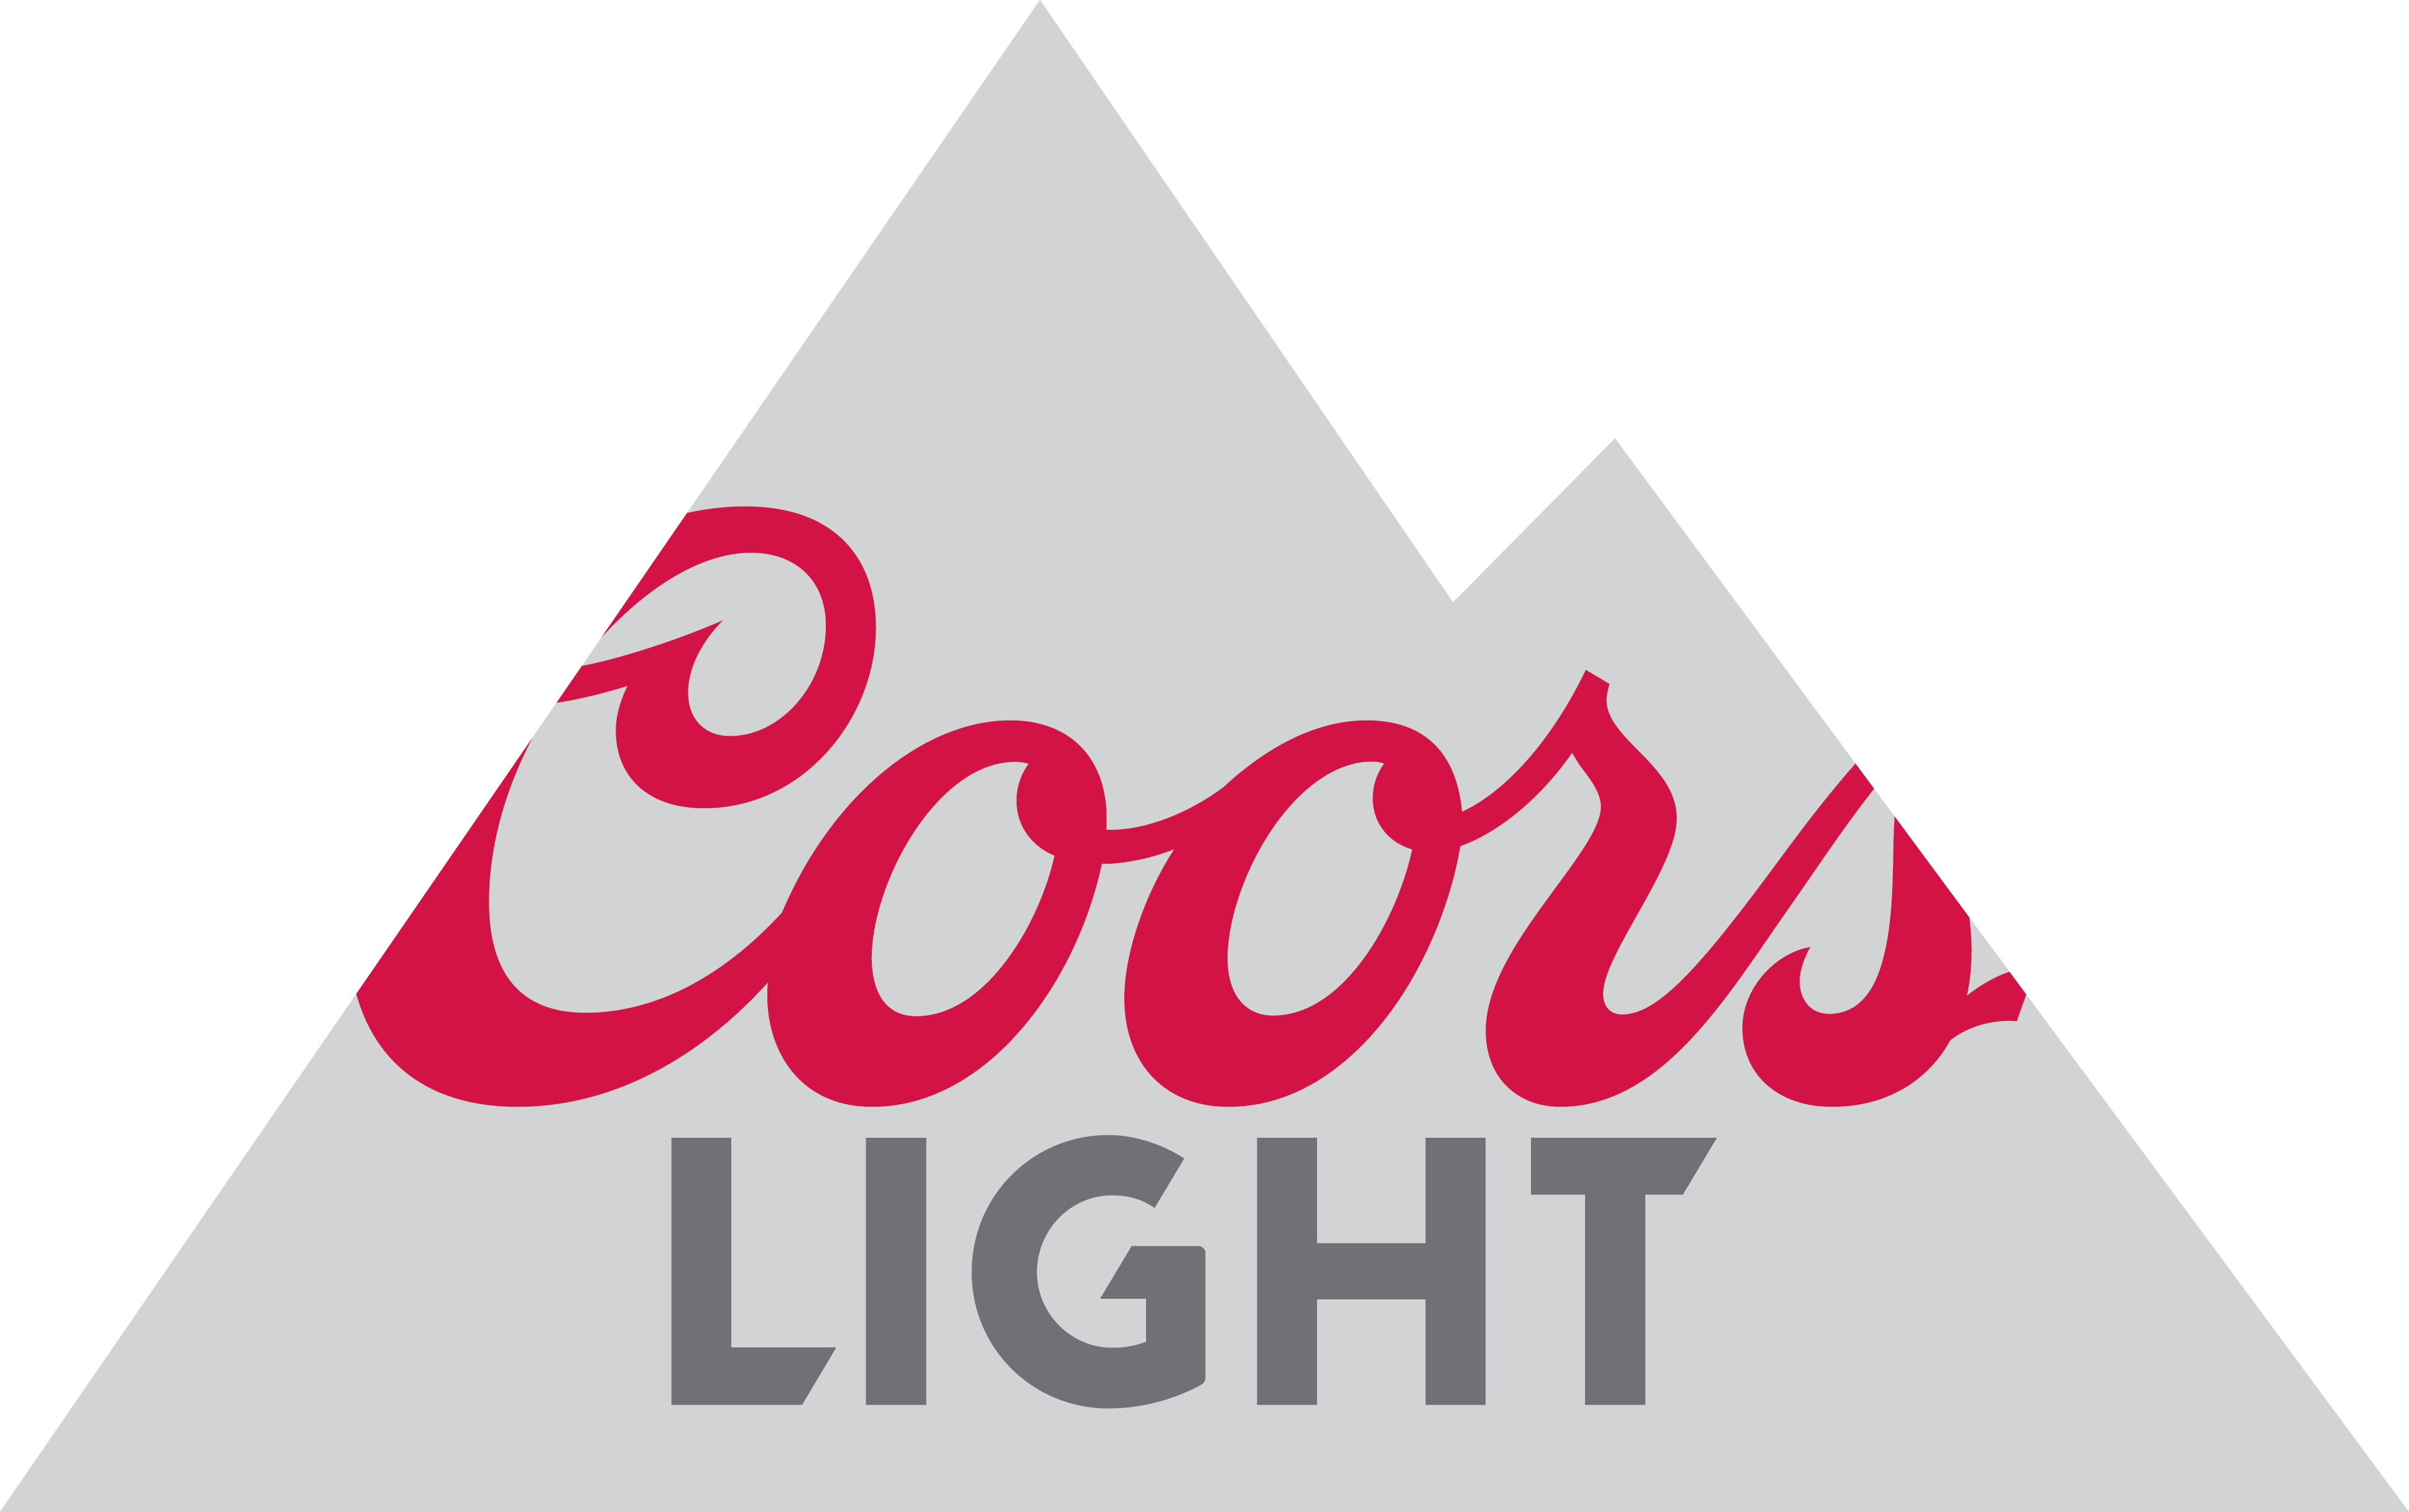 Coors.